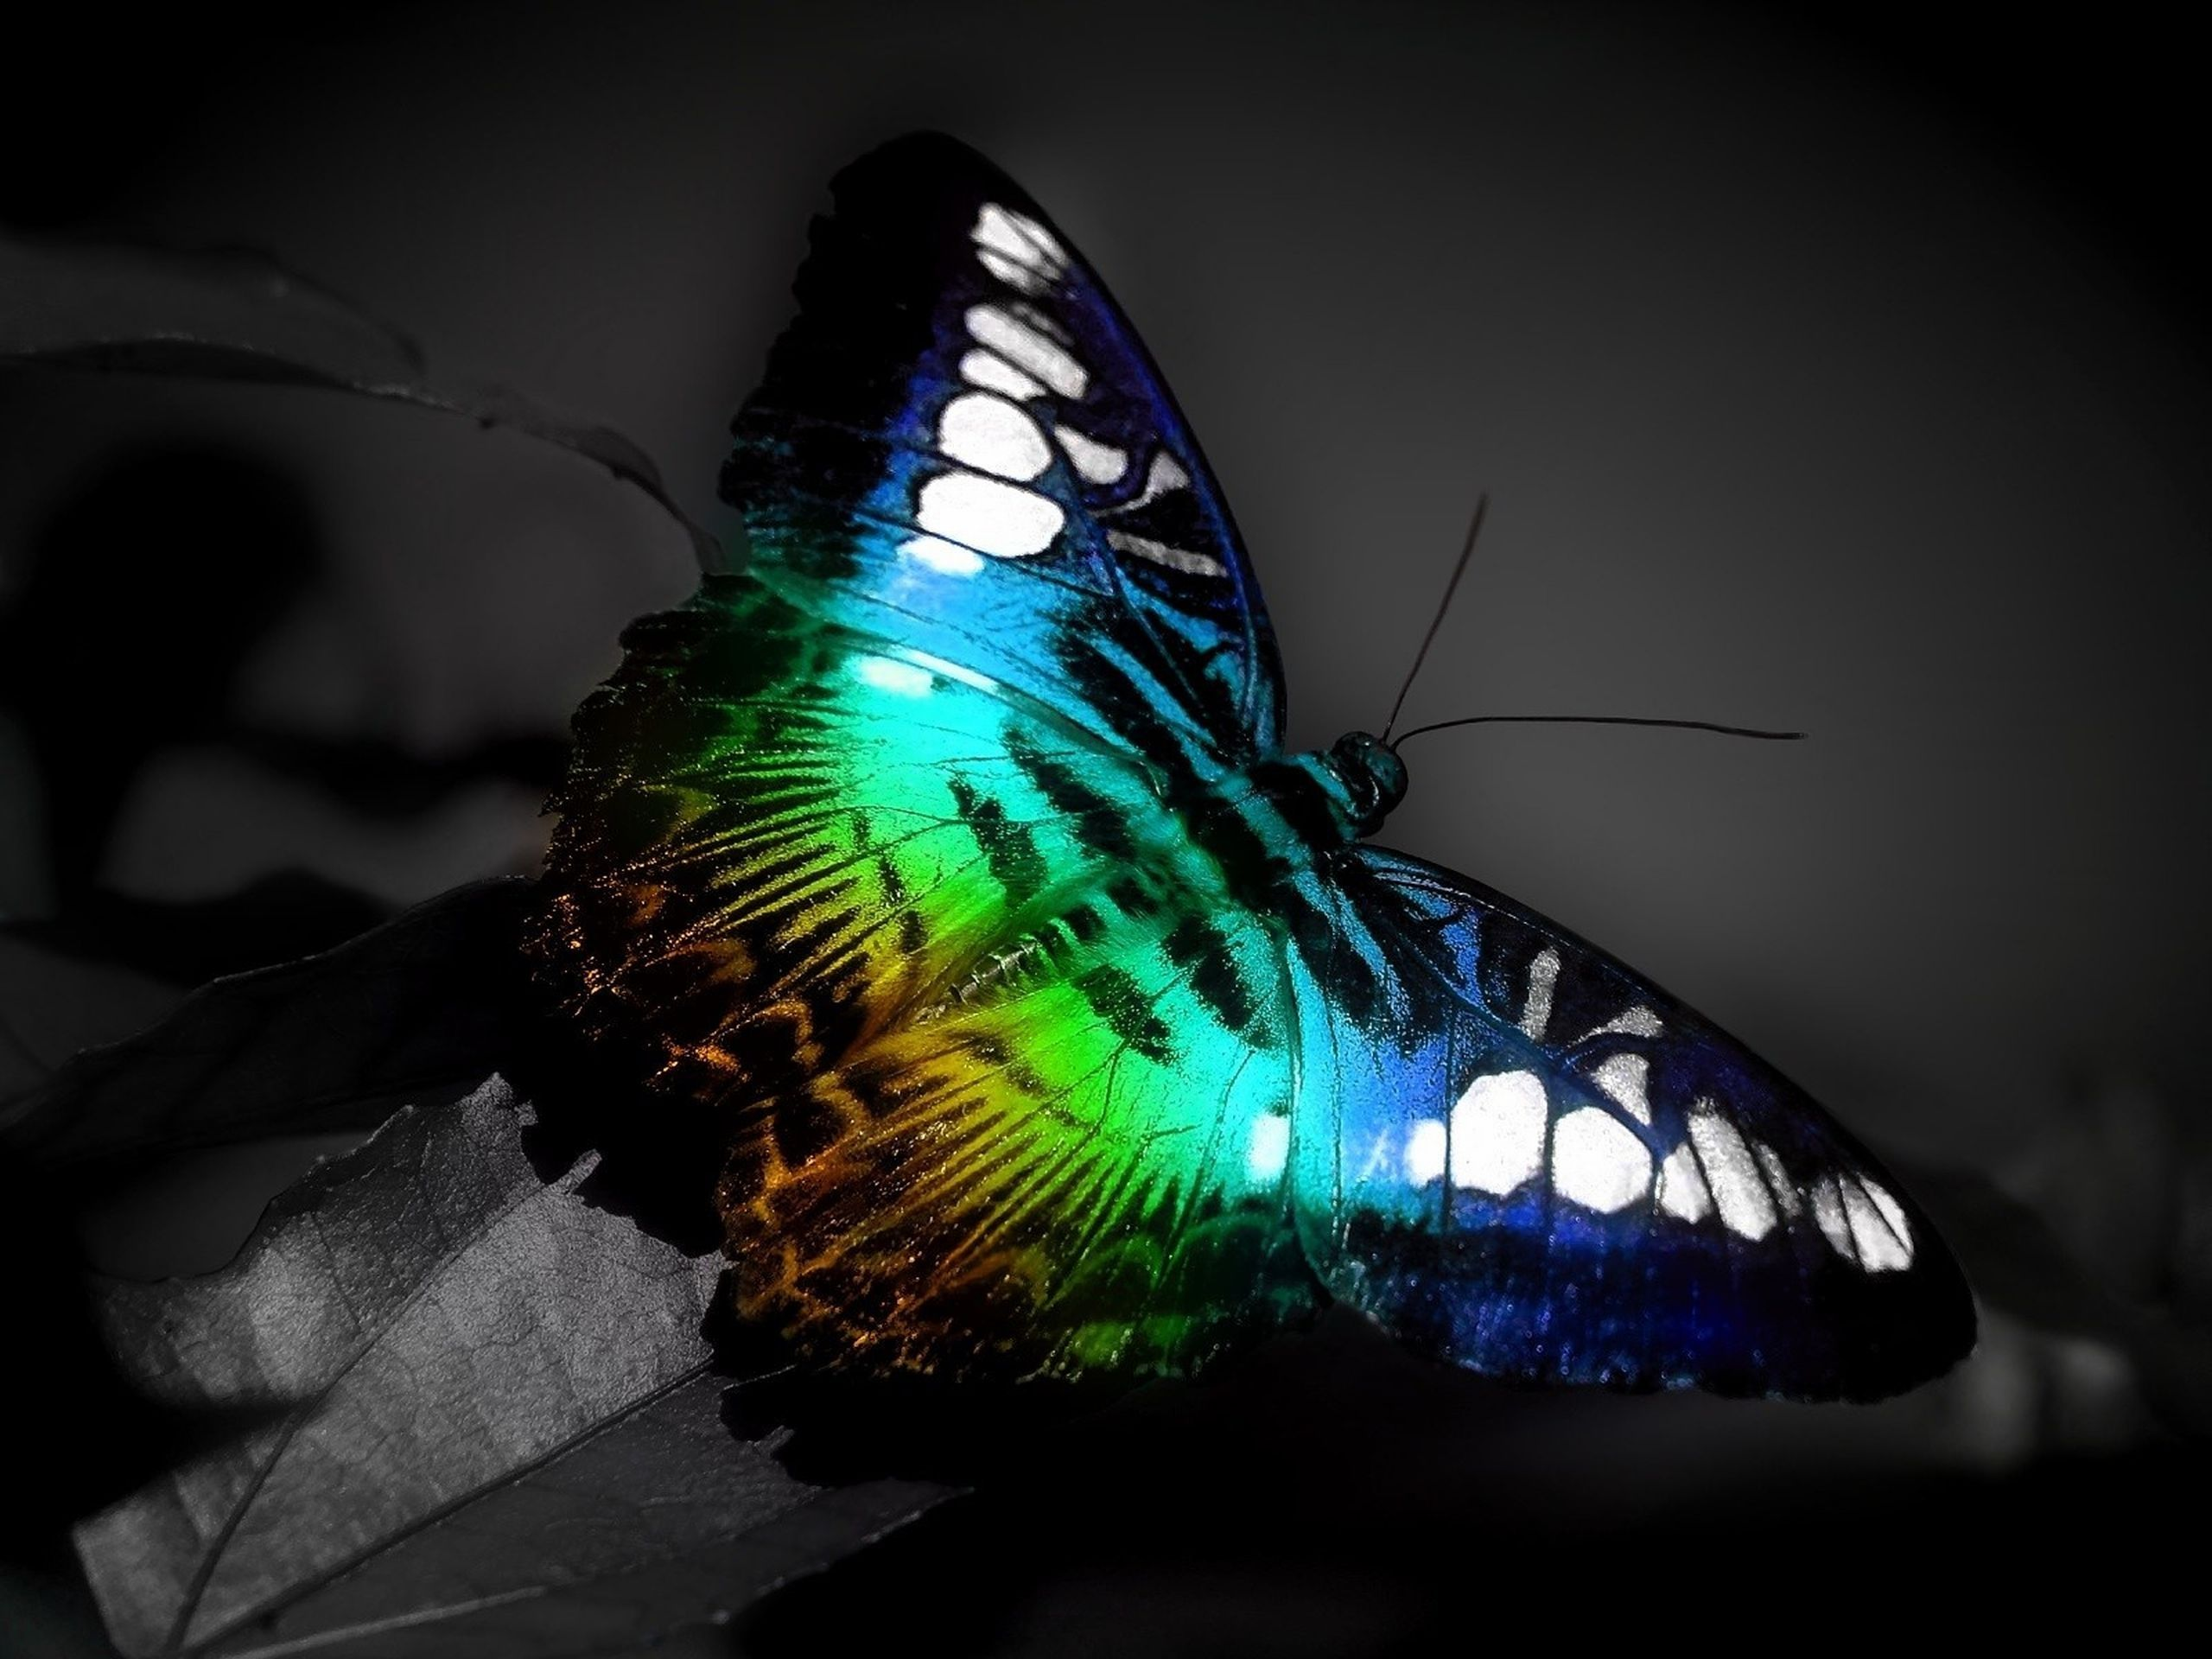 Download Free Wallpapers Most Viewed High Quality Backgrounds Butterfly Photos Butterfly Wallpaper Butterfly Pictures